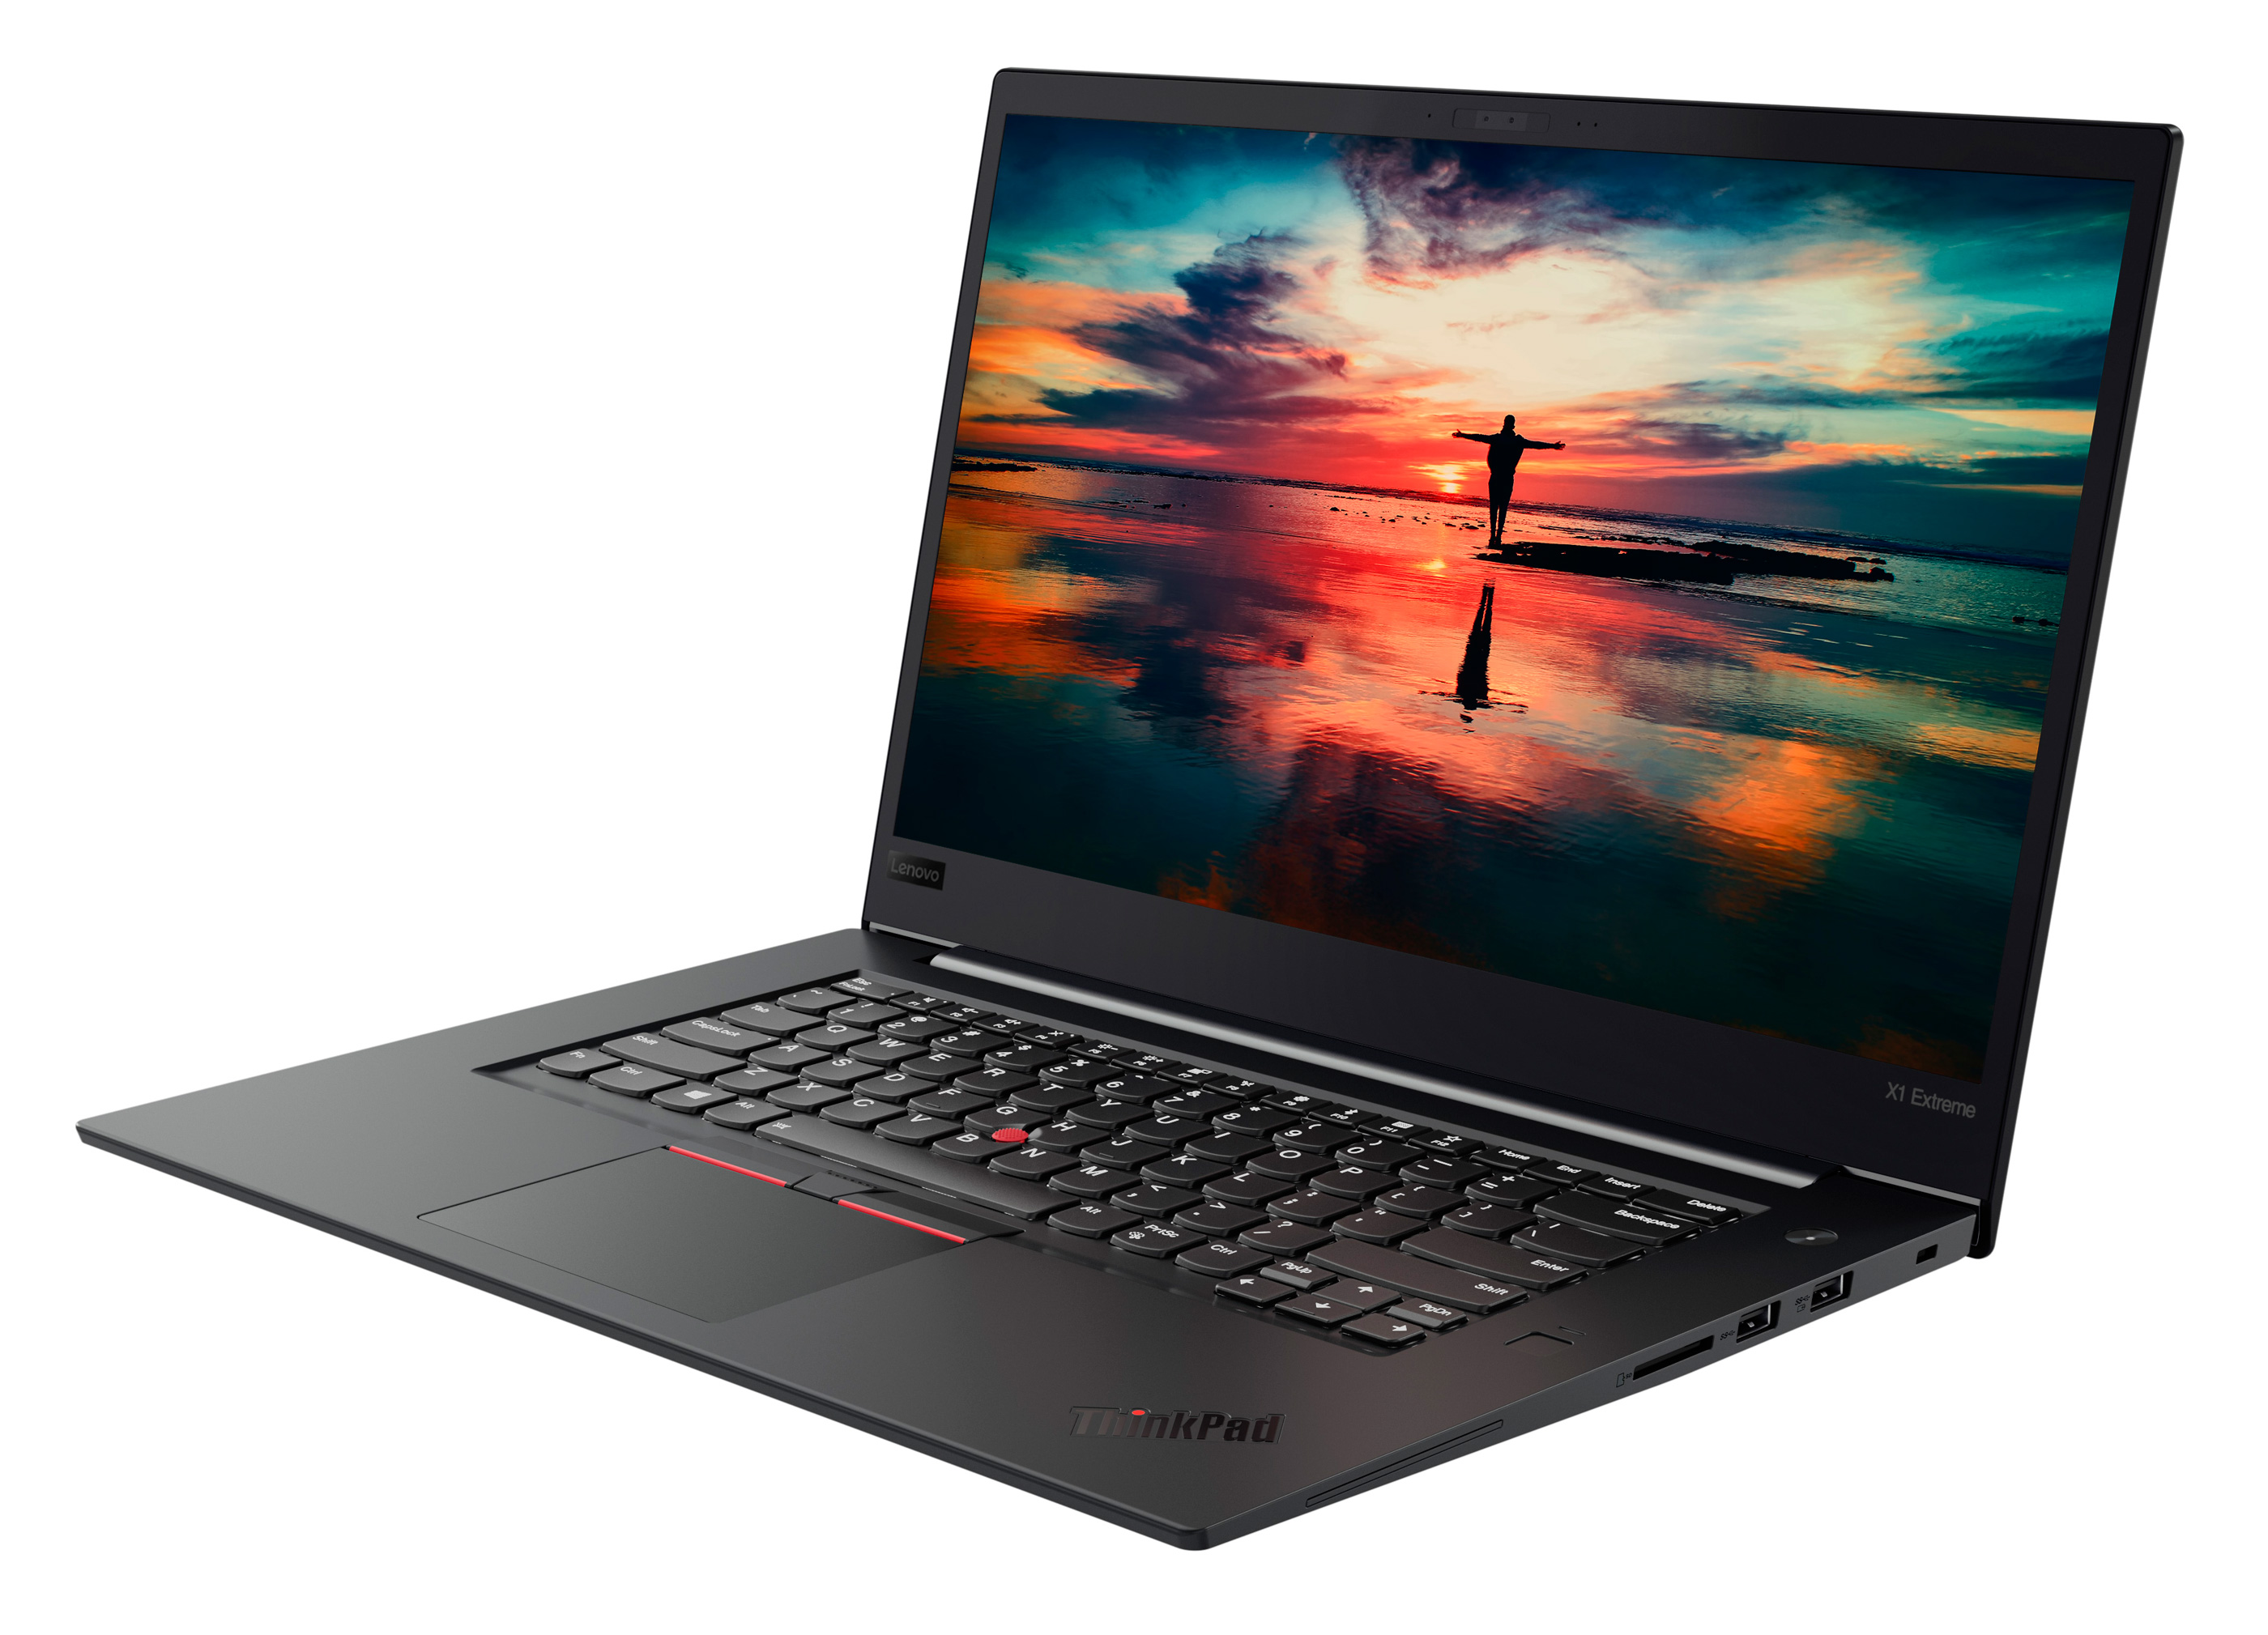 Фото  Ультрабук ThinkPad X1 Extreme 1st Gen (20MF000SRT)